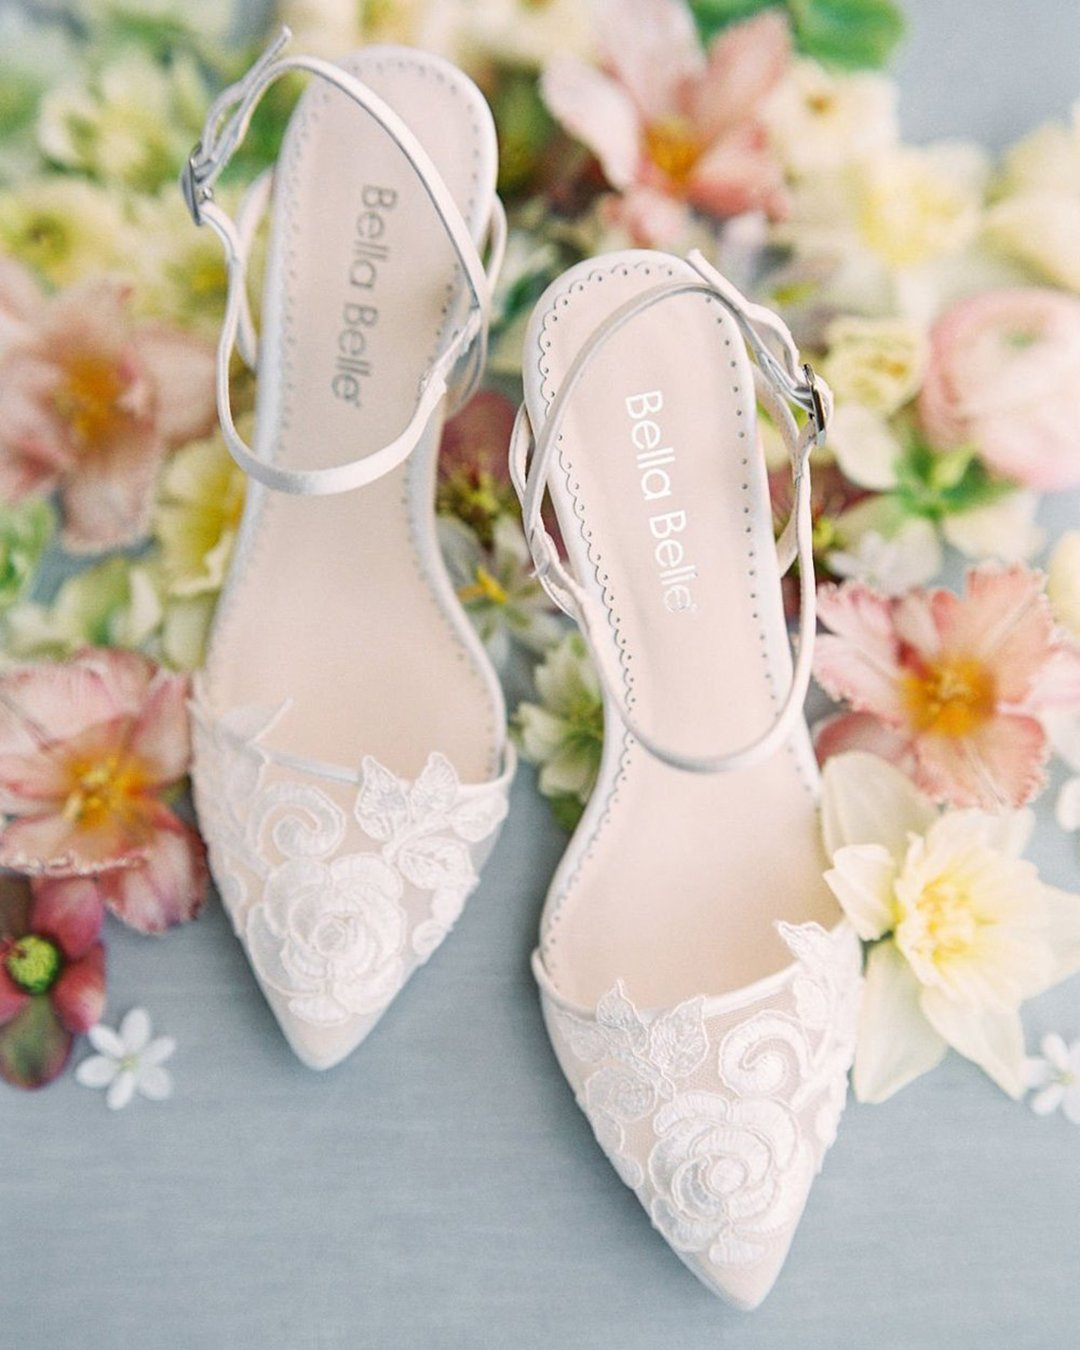 SERENA Ivory Flower Embroidered Lace Boho Low Heel